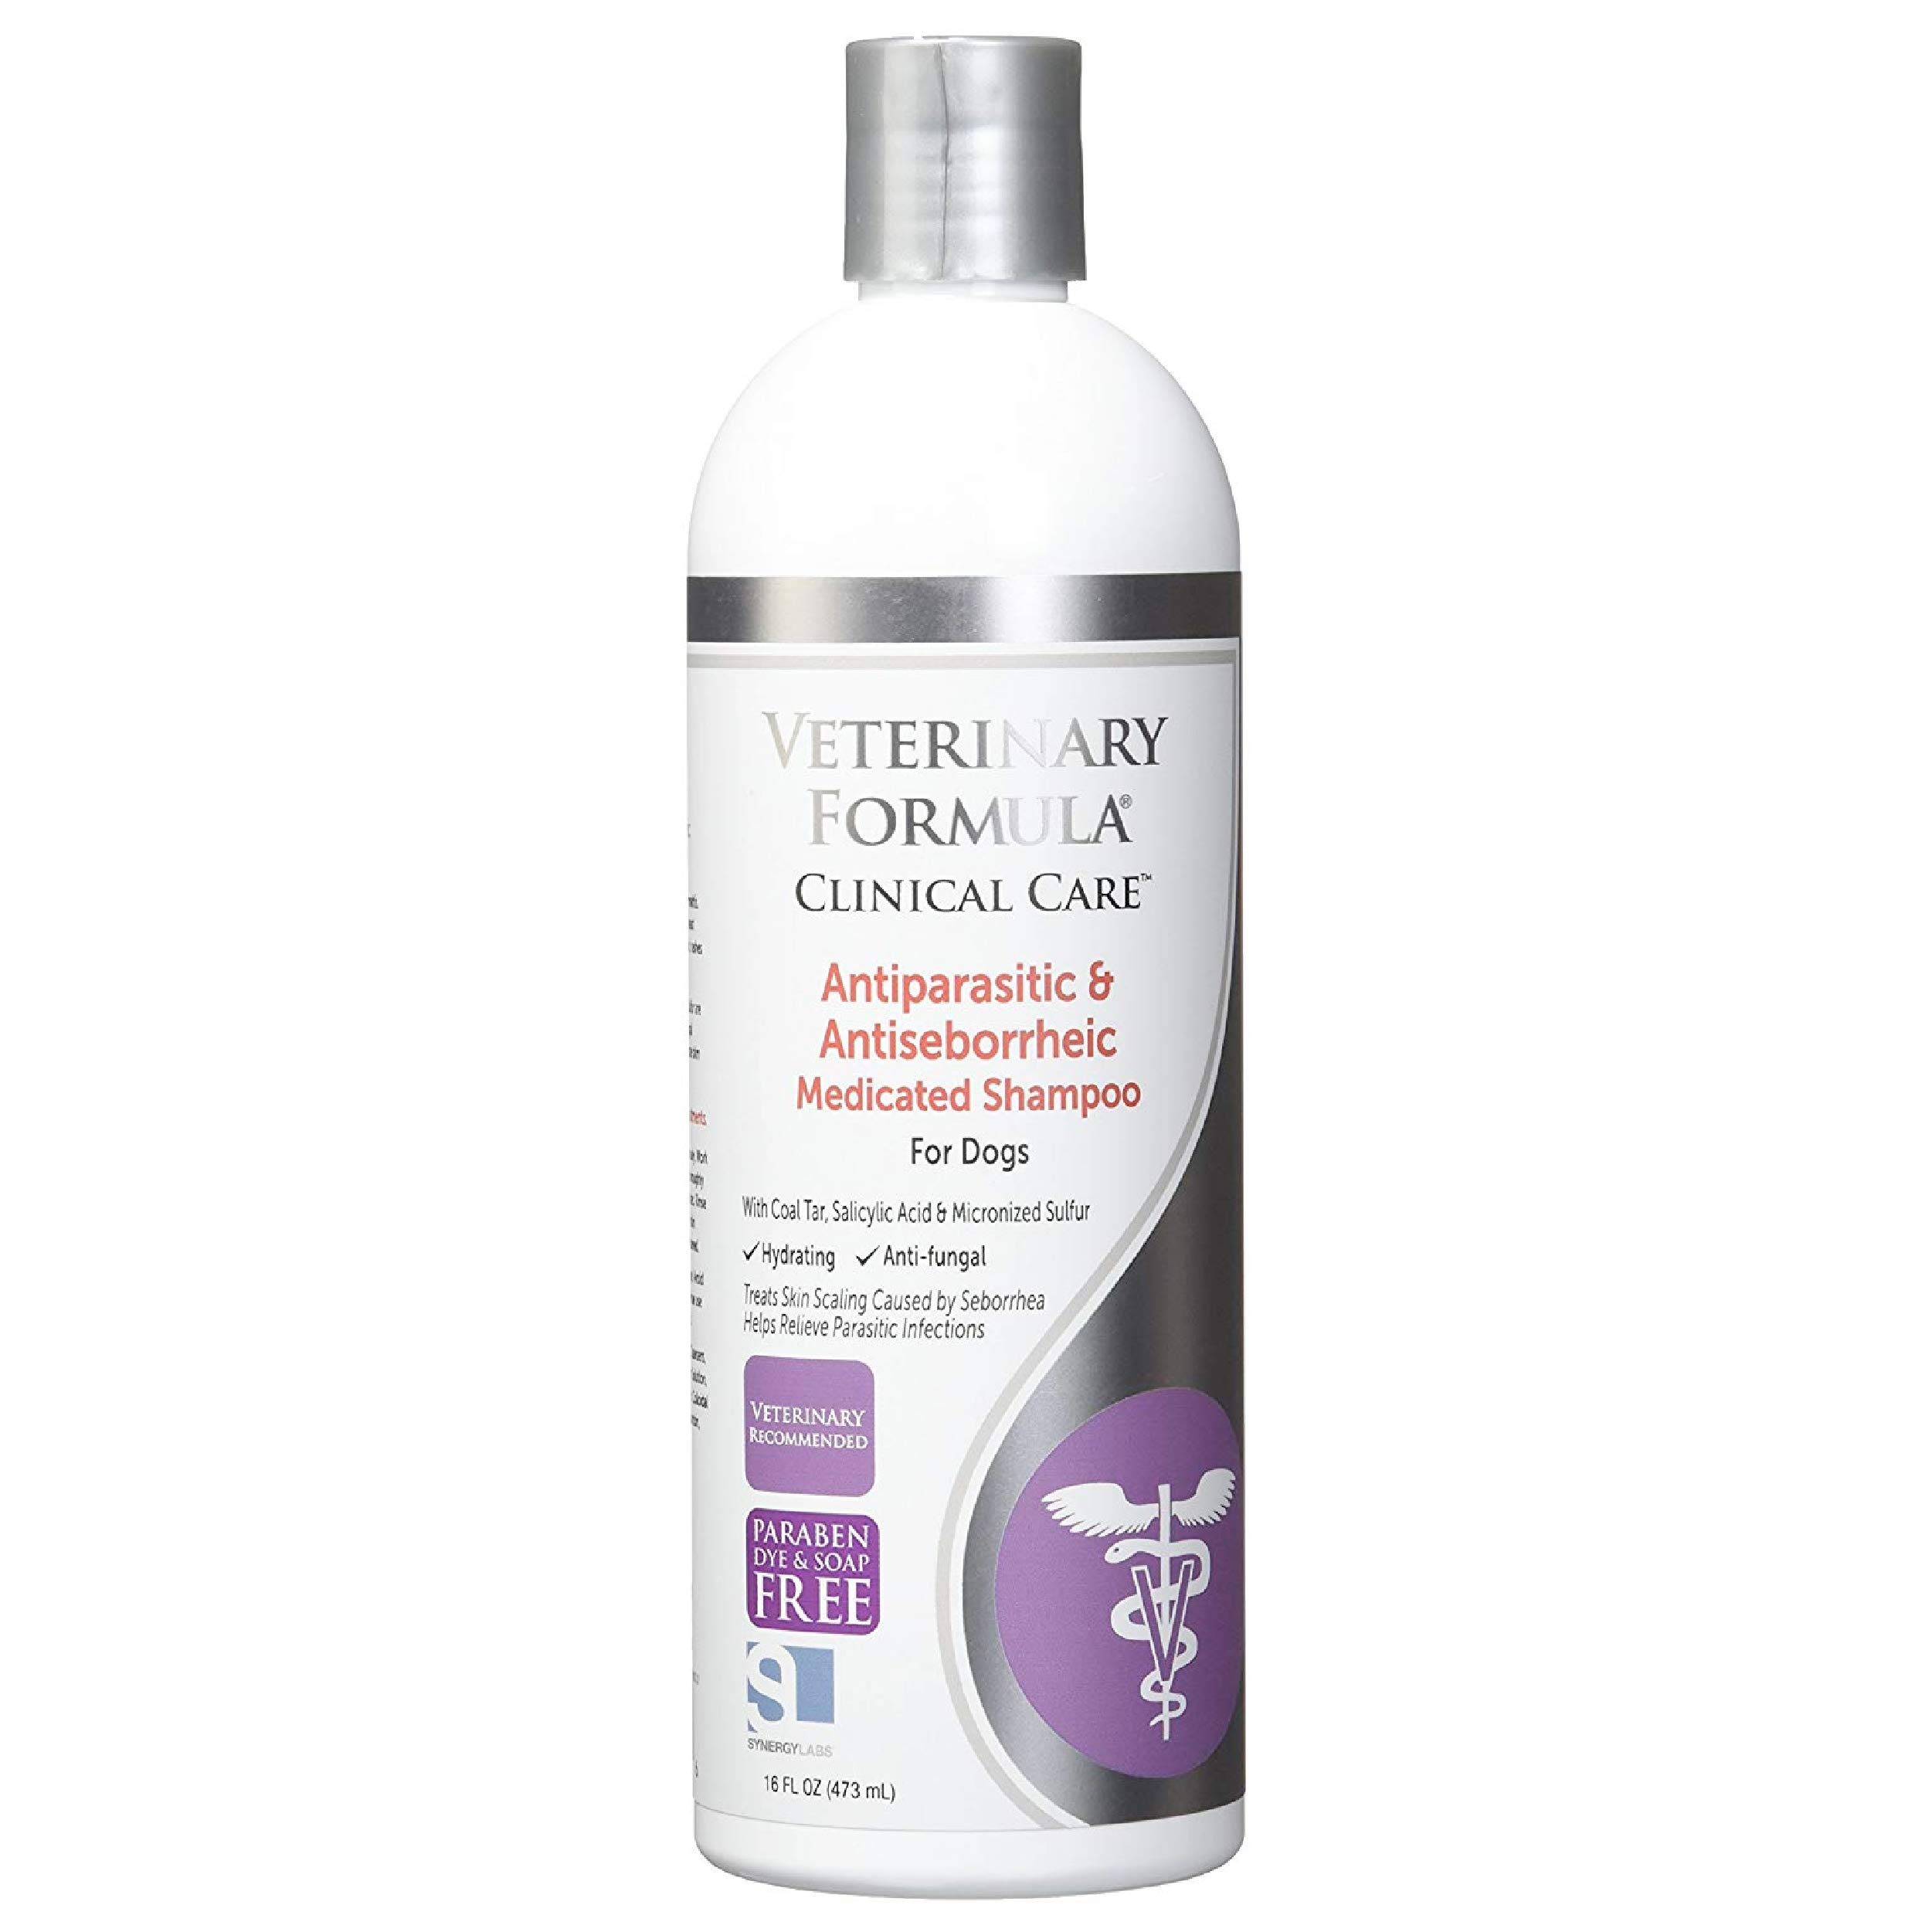 Veterinary Formula Clinical Care 16 Oz